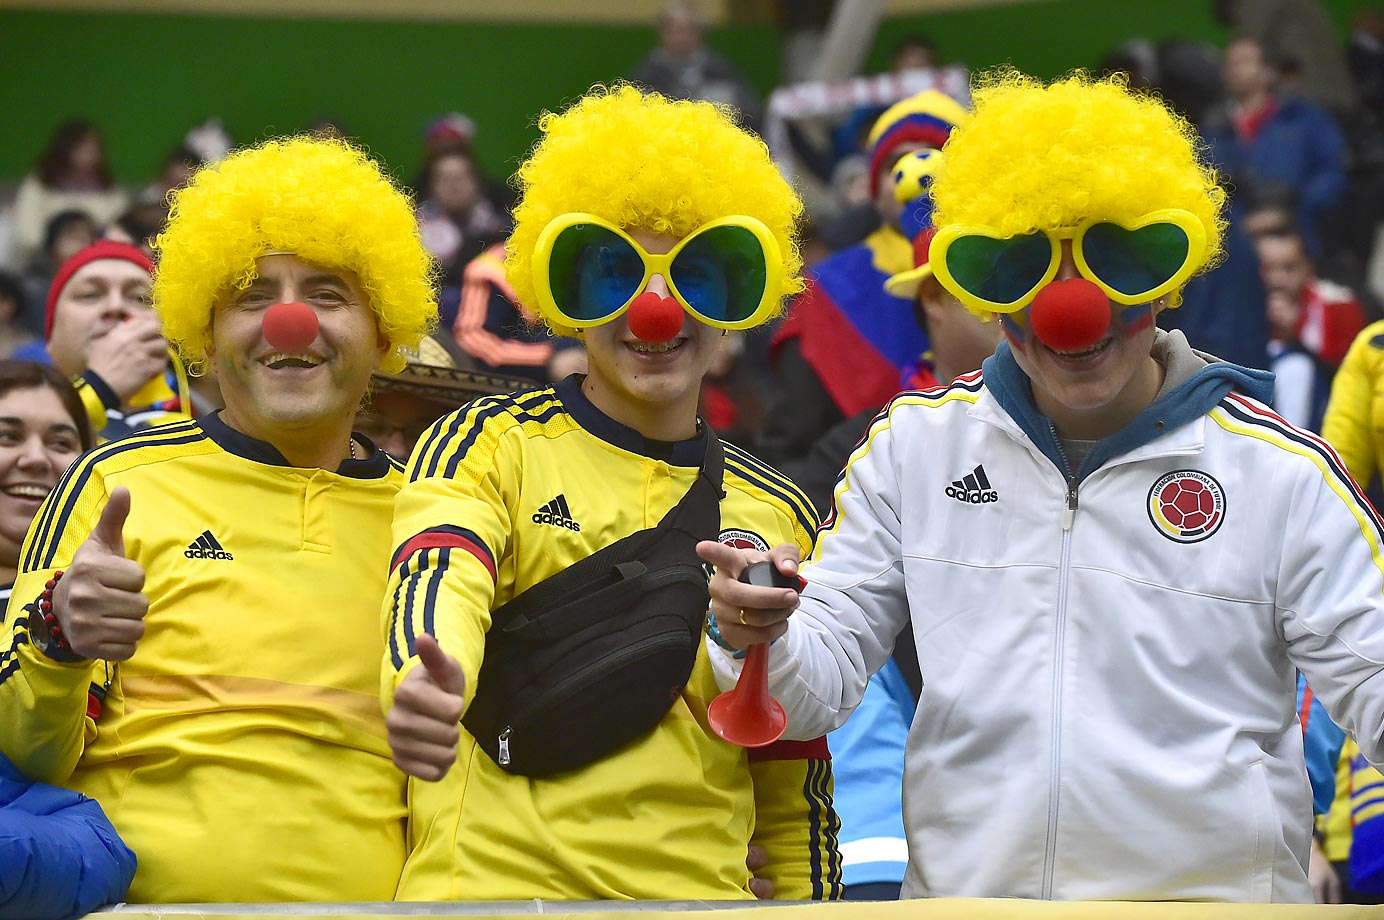 Fans of Colombia wait for the start of the 2015 Copa America football championship match between Colombia and Peru.